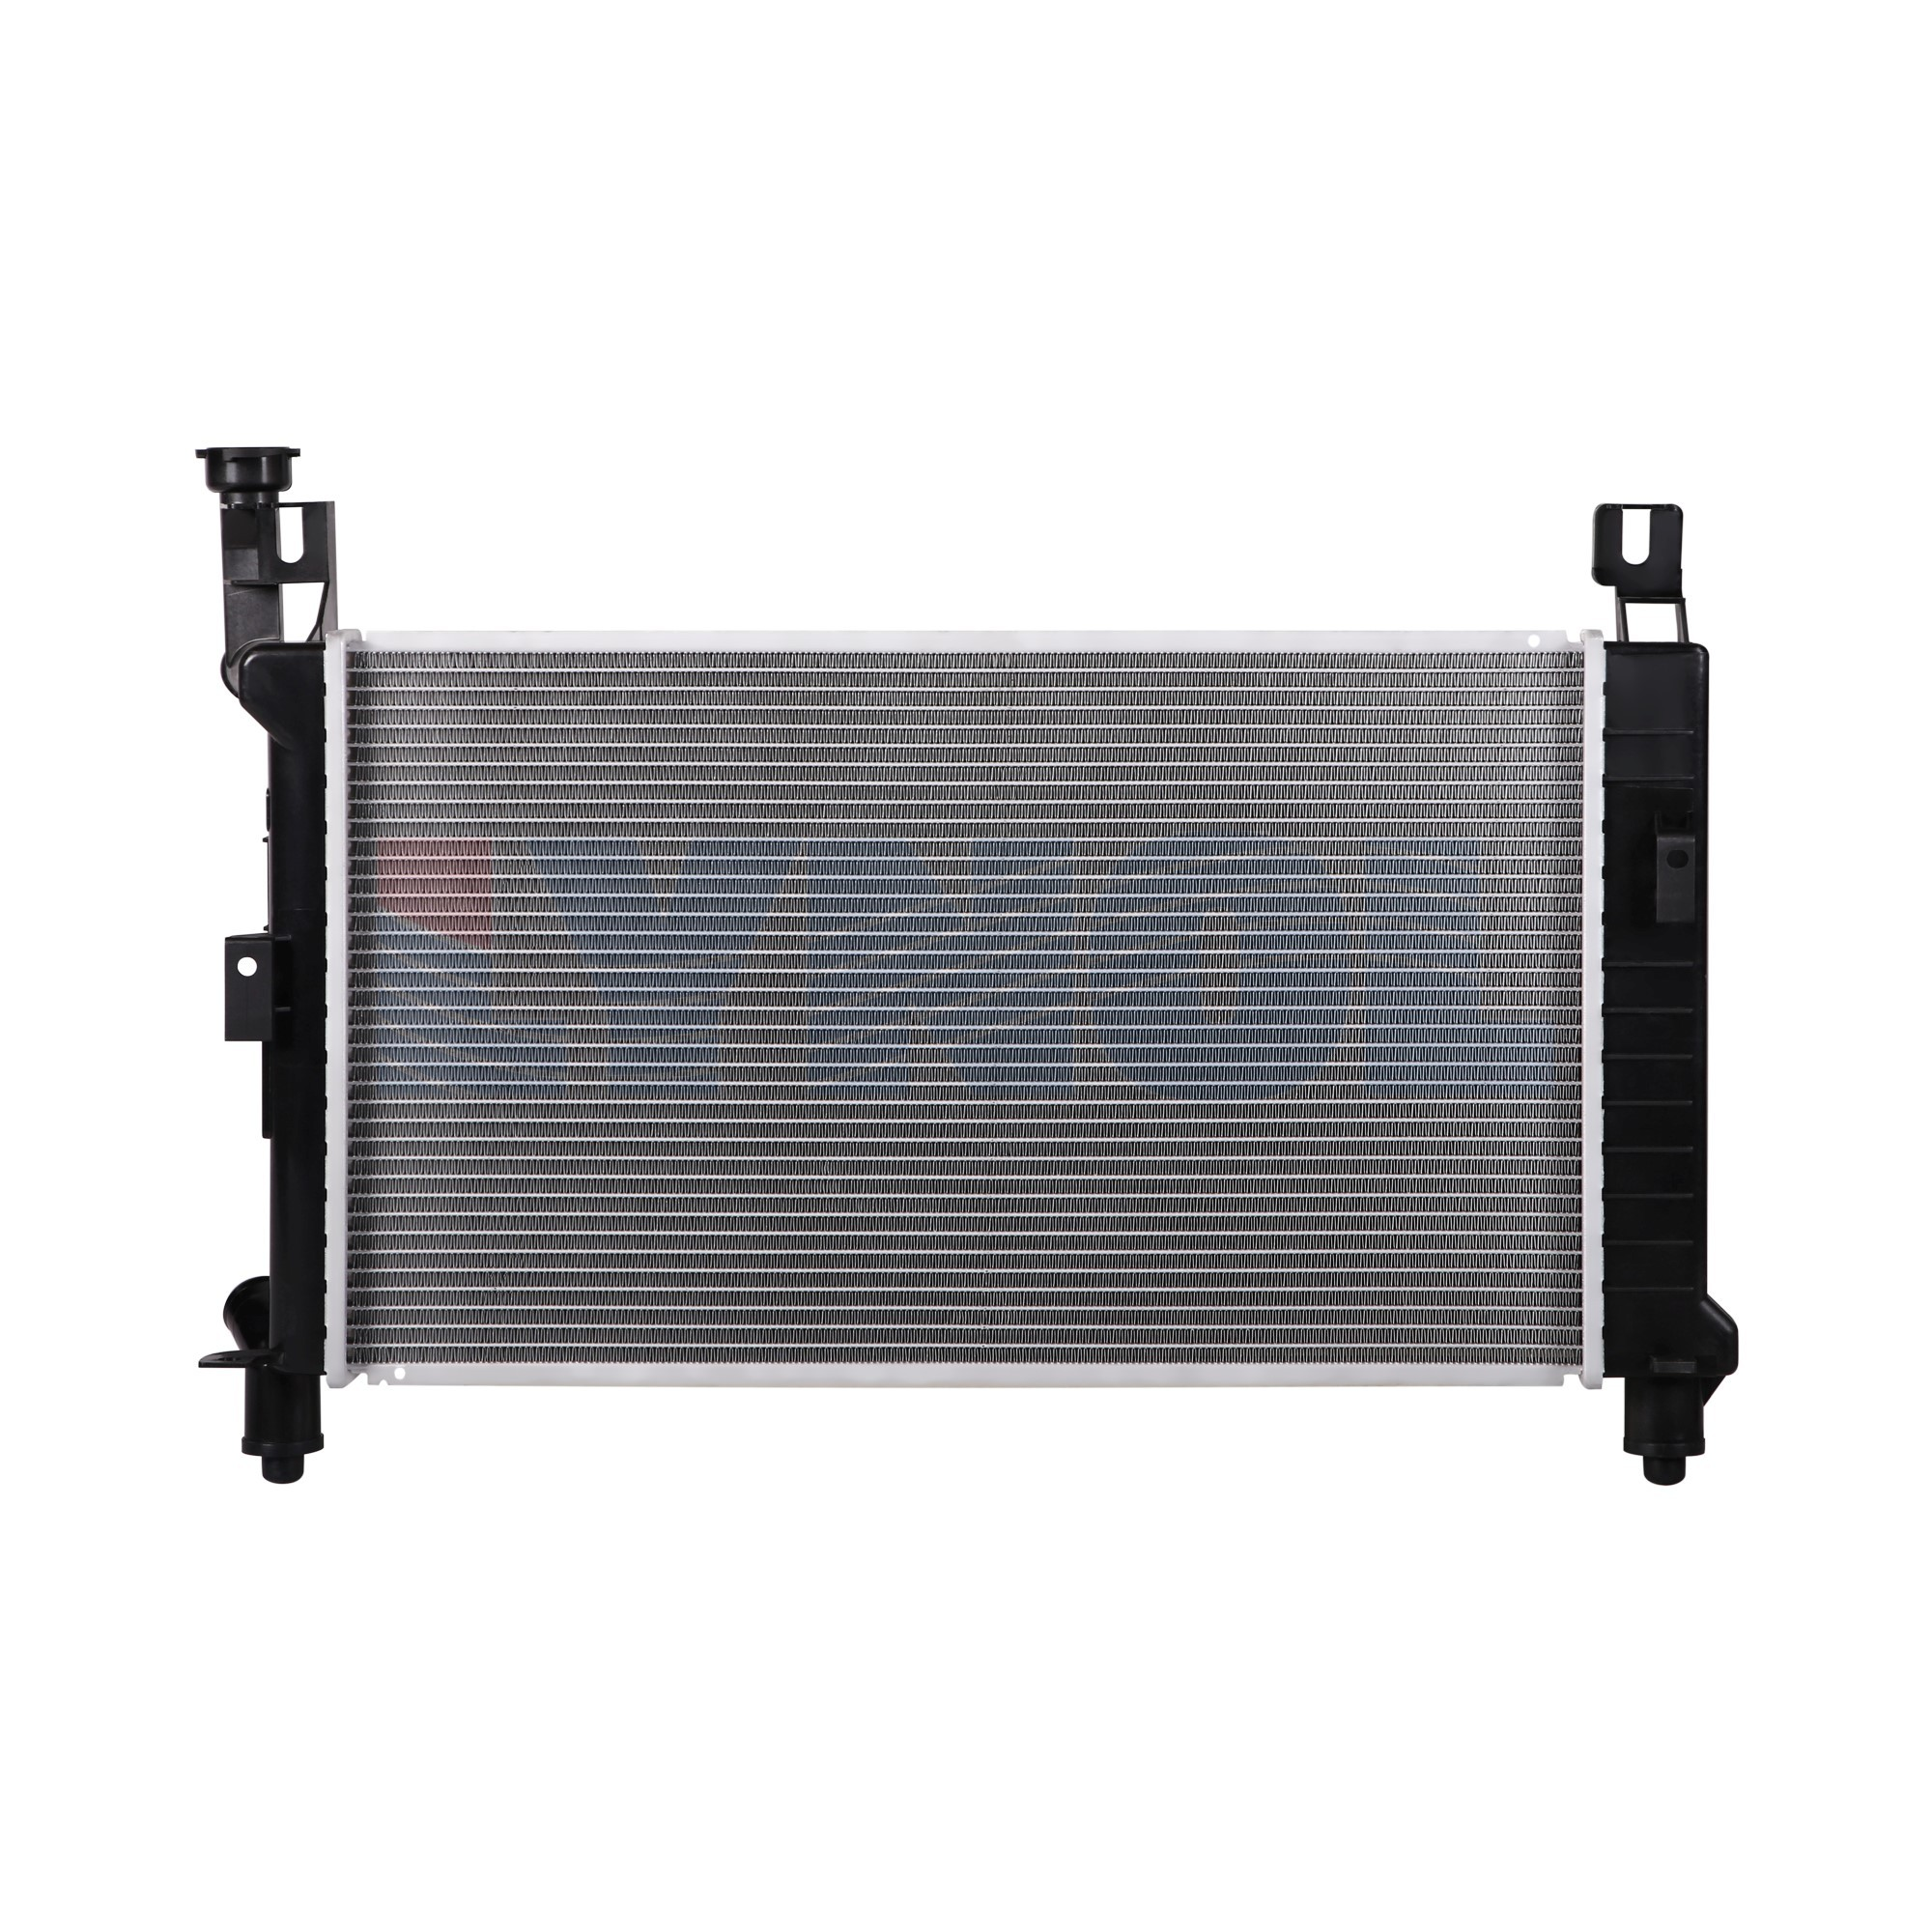 LR1388 - RADIATOR  - 93-05 Grand Voyager / Town & Country / Voyager / Caravan / Grand Voyager /